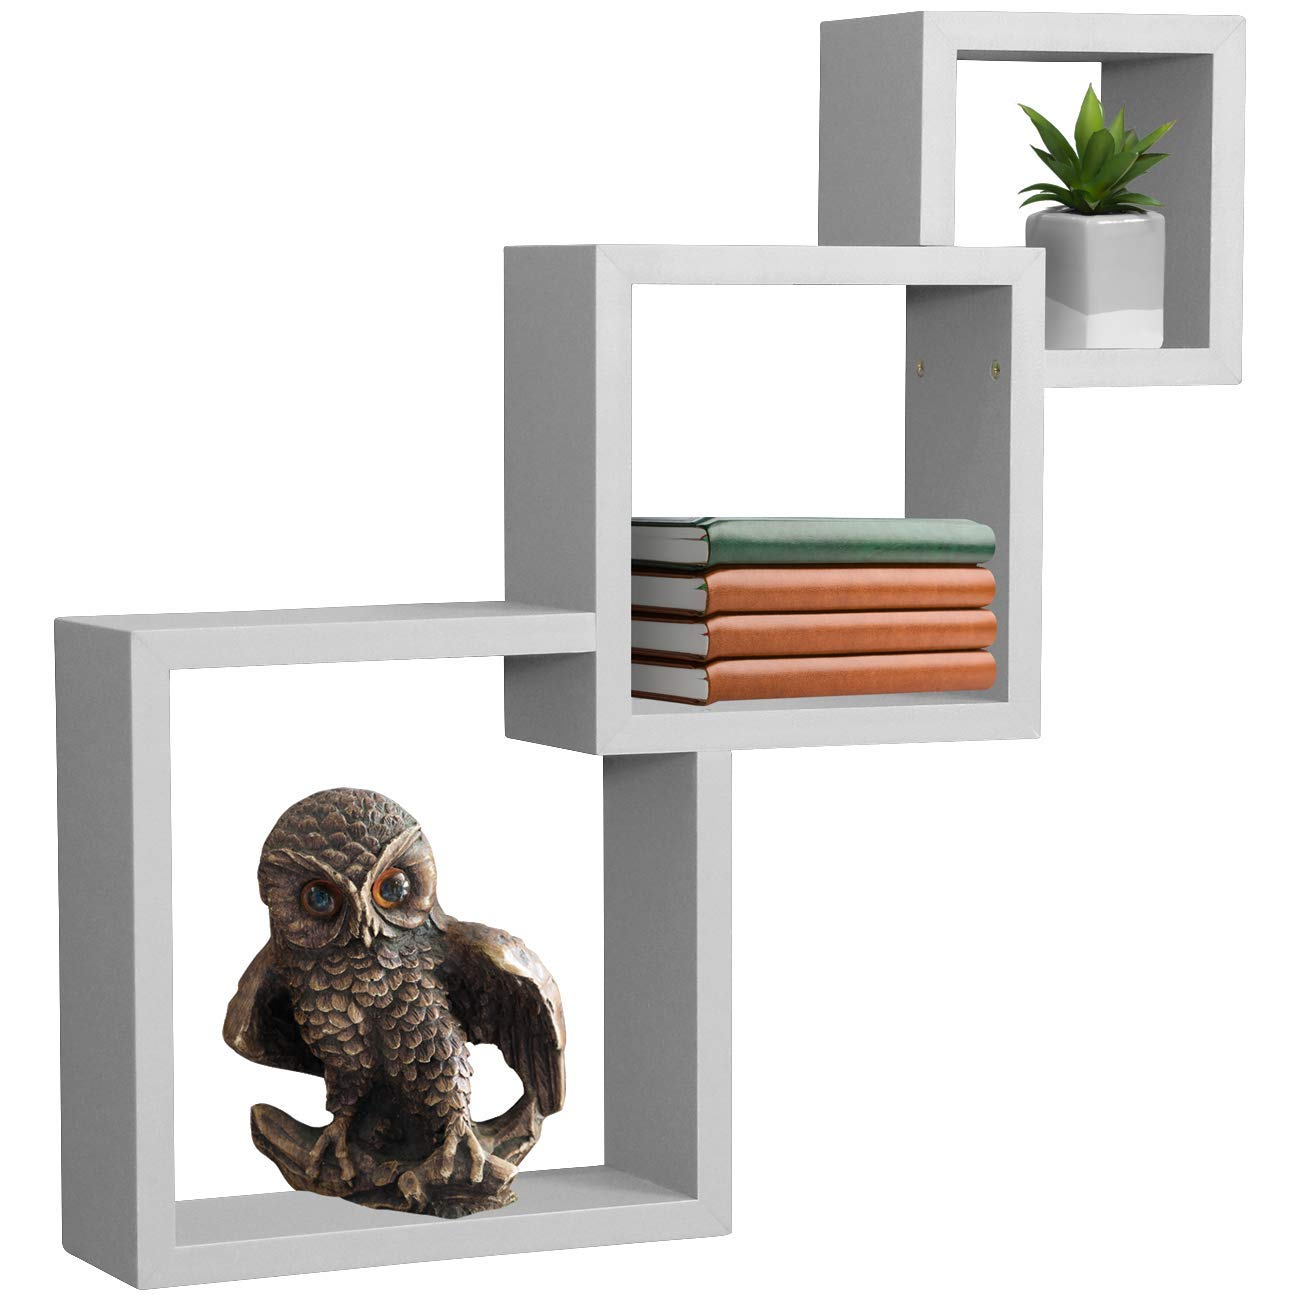 sorbus floating shelf square interlocking cubes with white openings decorative wall shelves hanging display for frames collectibles and home decor ikea expedit cliffhanger bracket